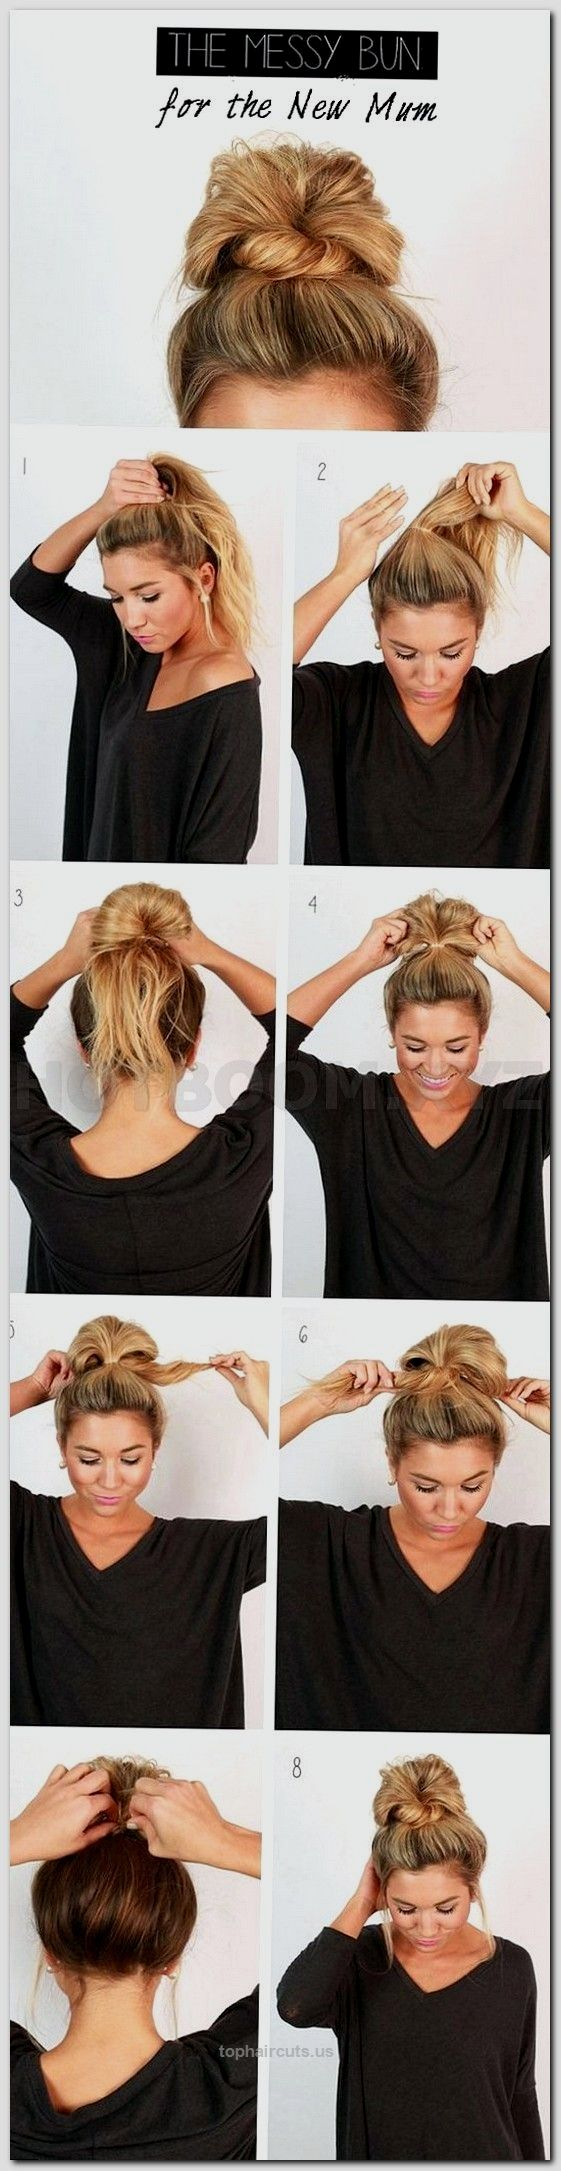 mens modern hairstyles, different hairstyles for marriage, new hairstyle in shor…  mens modern hairstyles, different hairstyles for marriage, new hairstyle in short hair, short hair hairstyles for black women, trendy short haircu ..  http://www.tophaircuts.us/2017/07/02/mens-modern-hairstyles-different-hairstyles-for-marriage-new-hairstyle-in-shor/